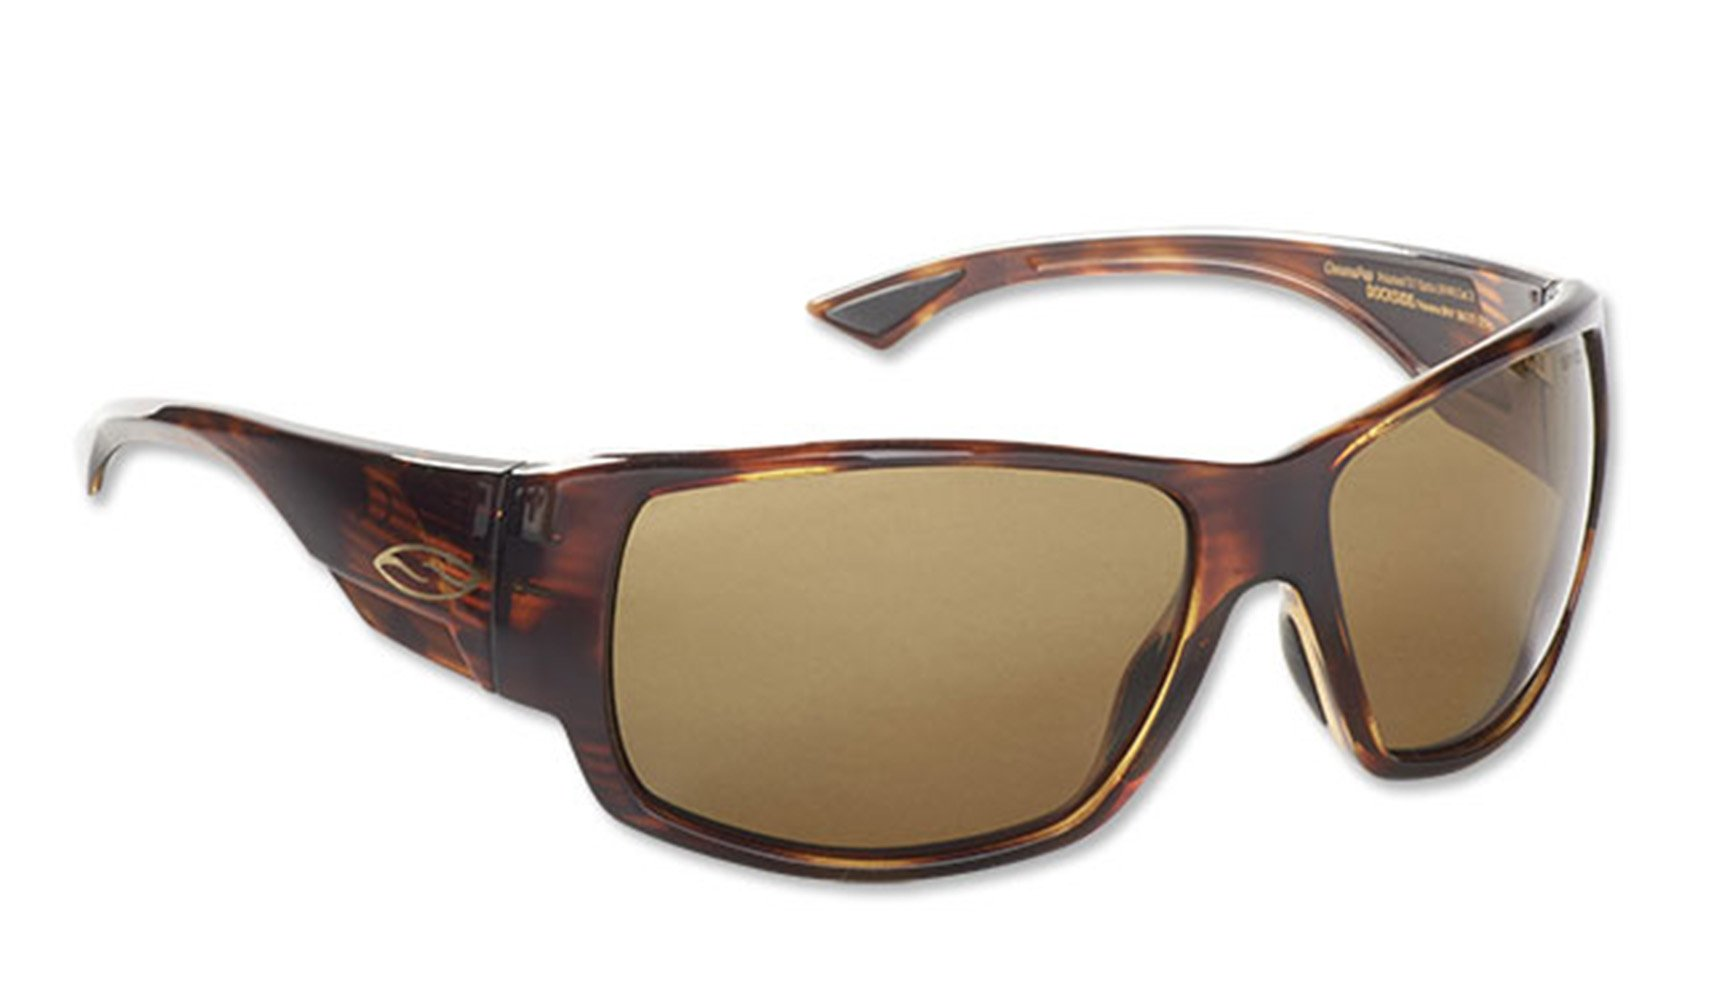 Orvis Men's Smith Dockside Sunglasses by Smith Optics